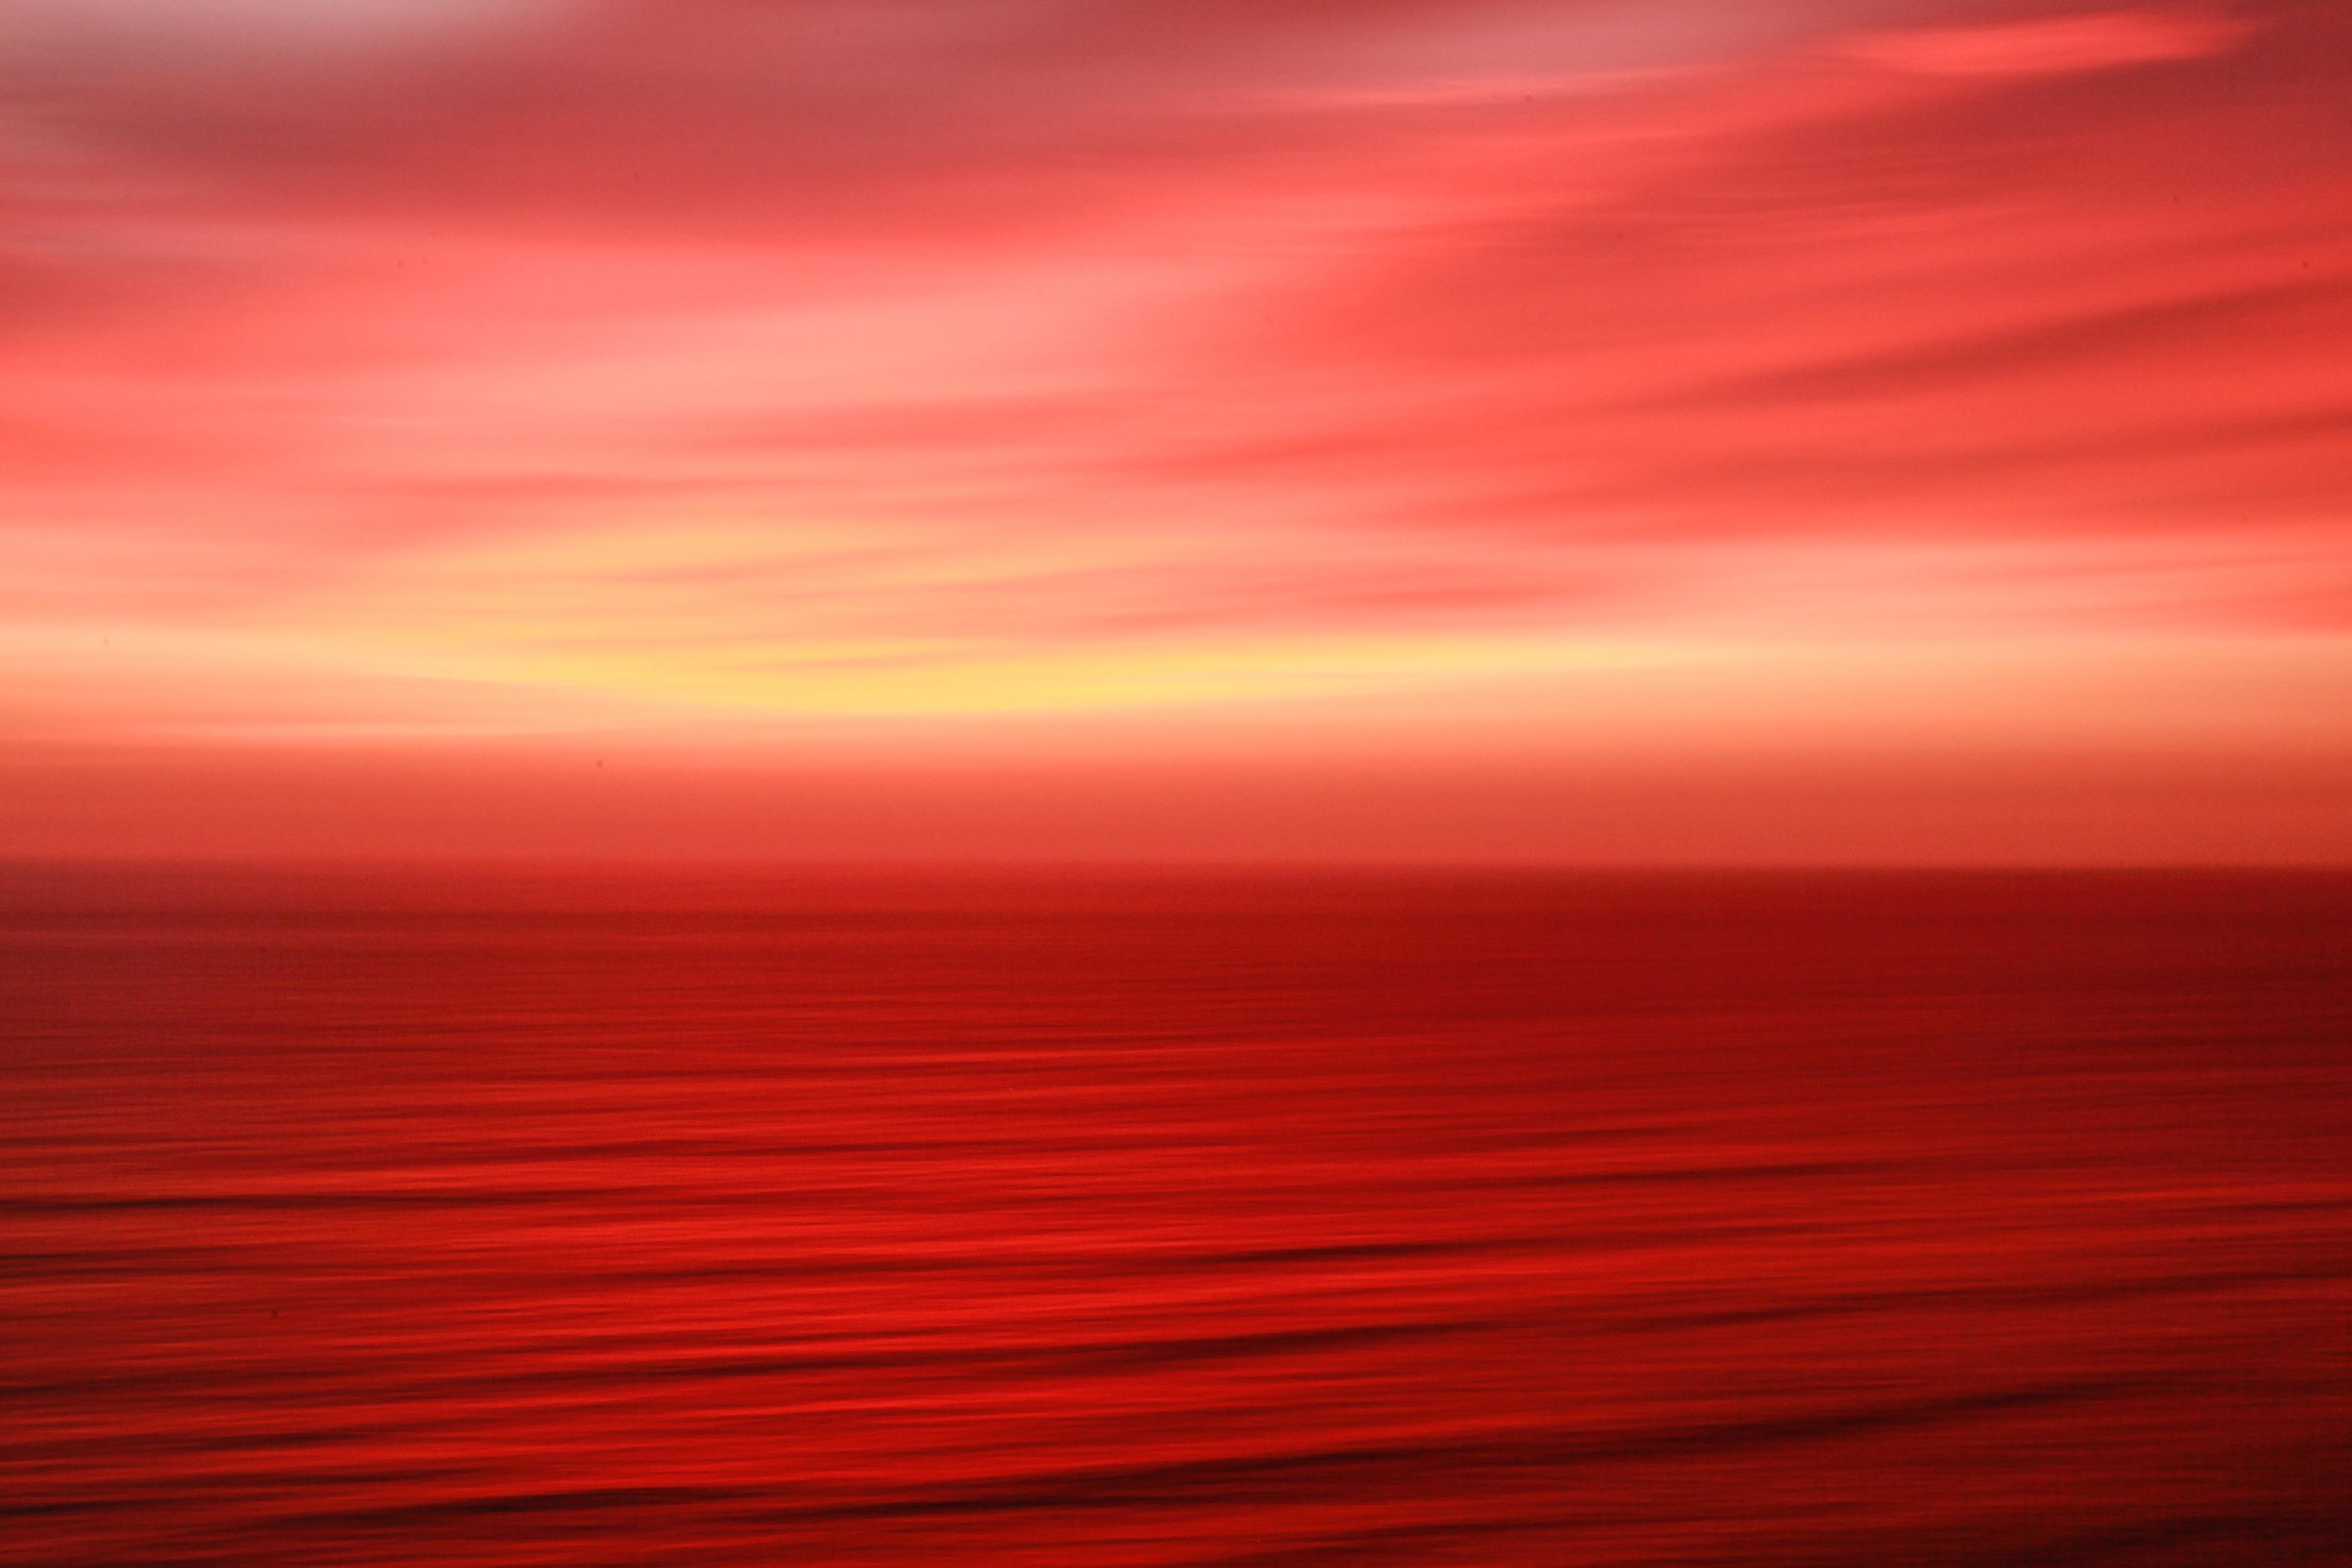 Abstract Ocean Art, Lima, Peru.